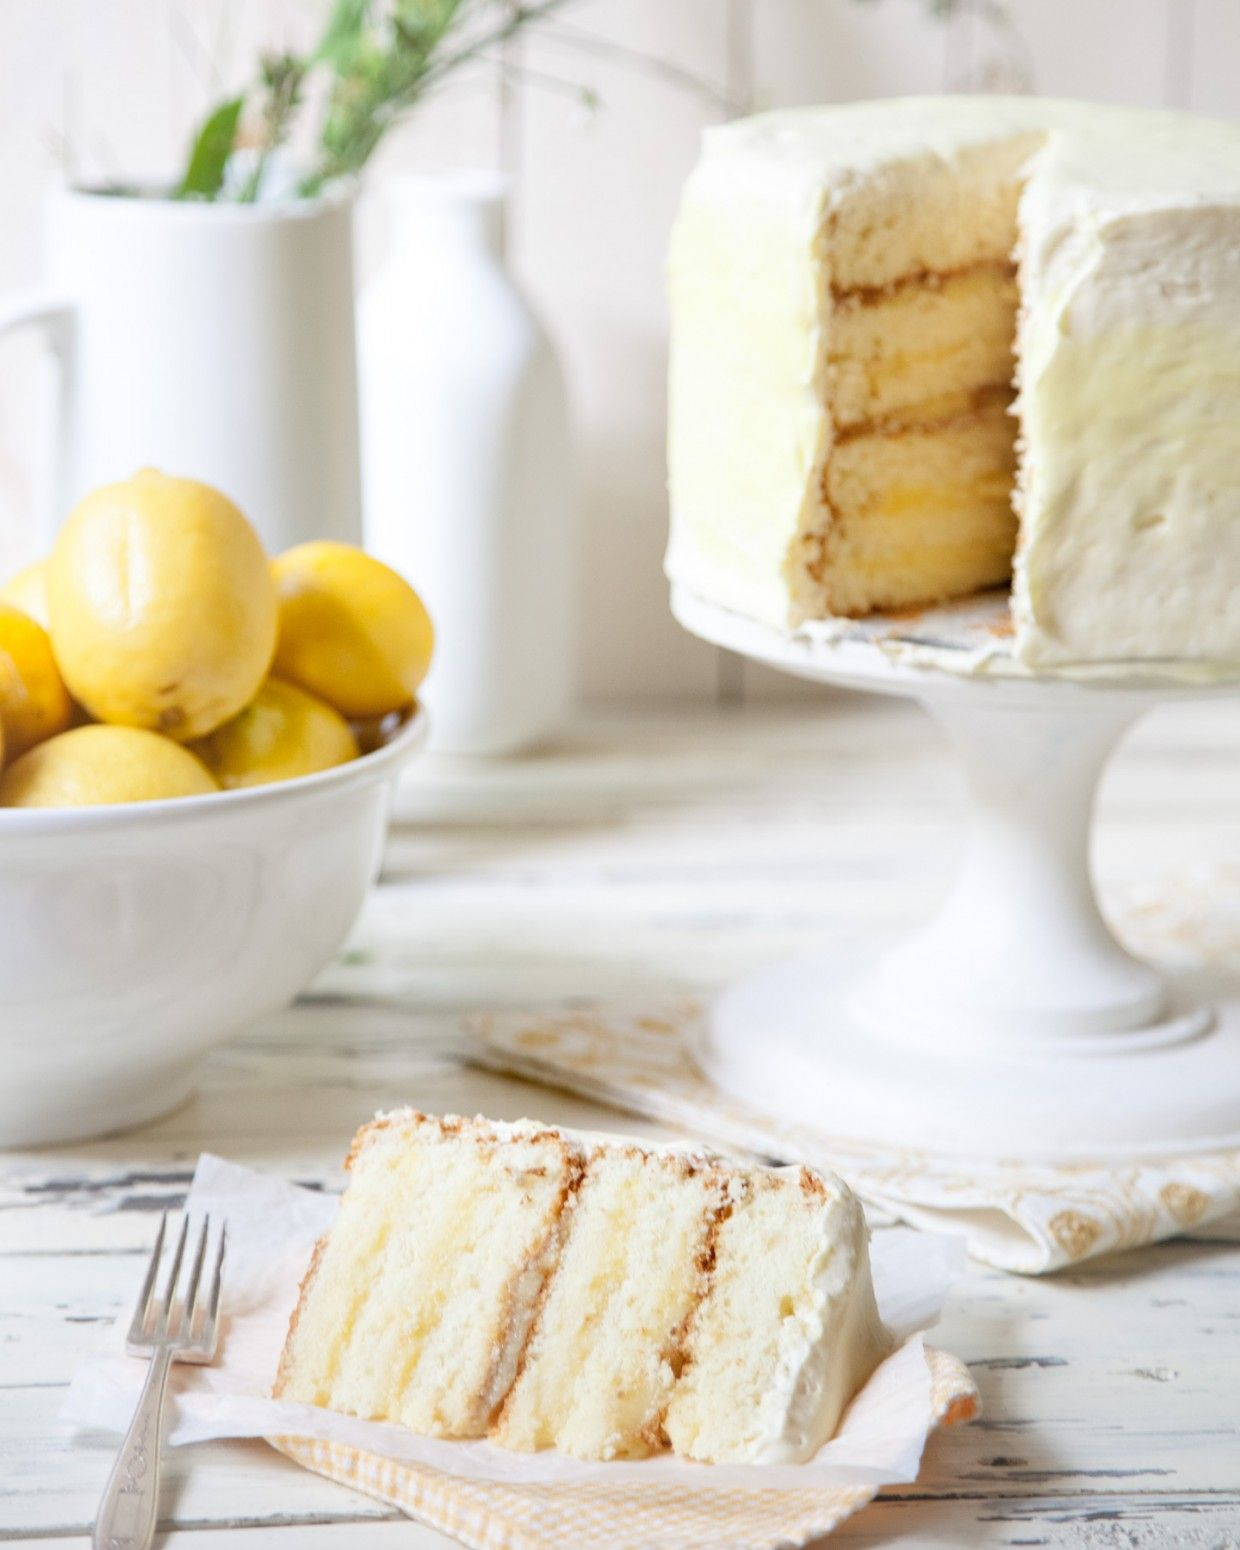 A Summer Lemon Cake by Russell van Kraayenburg at Chasing Delicious #lemon #recipe